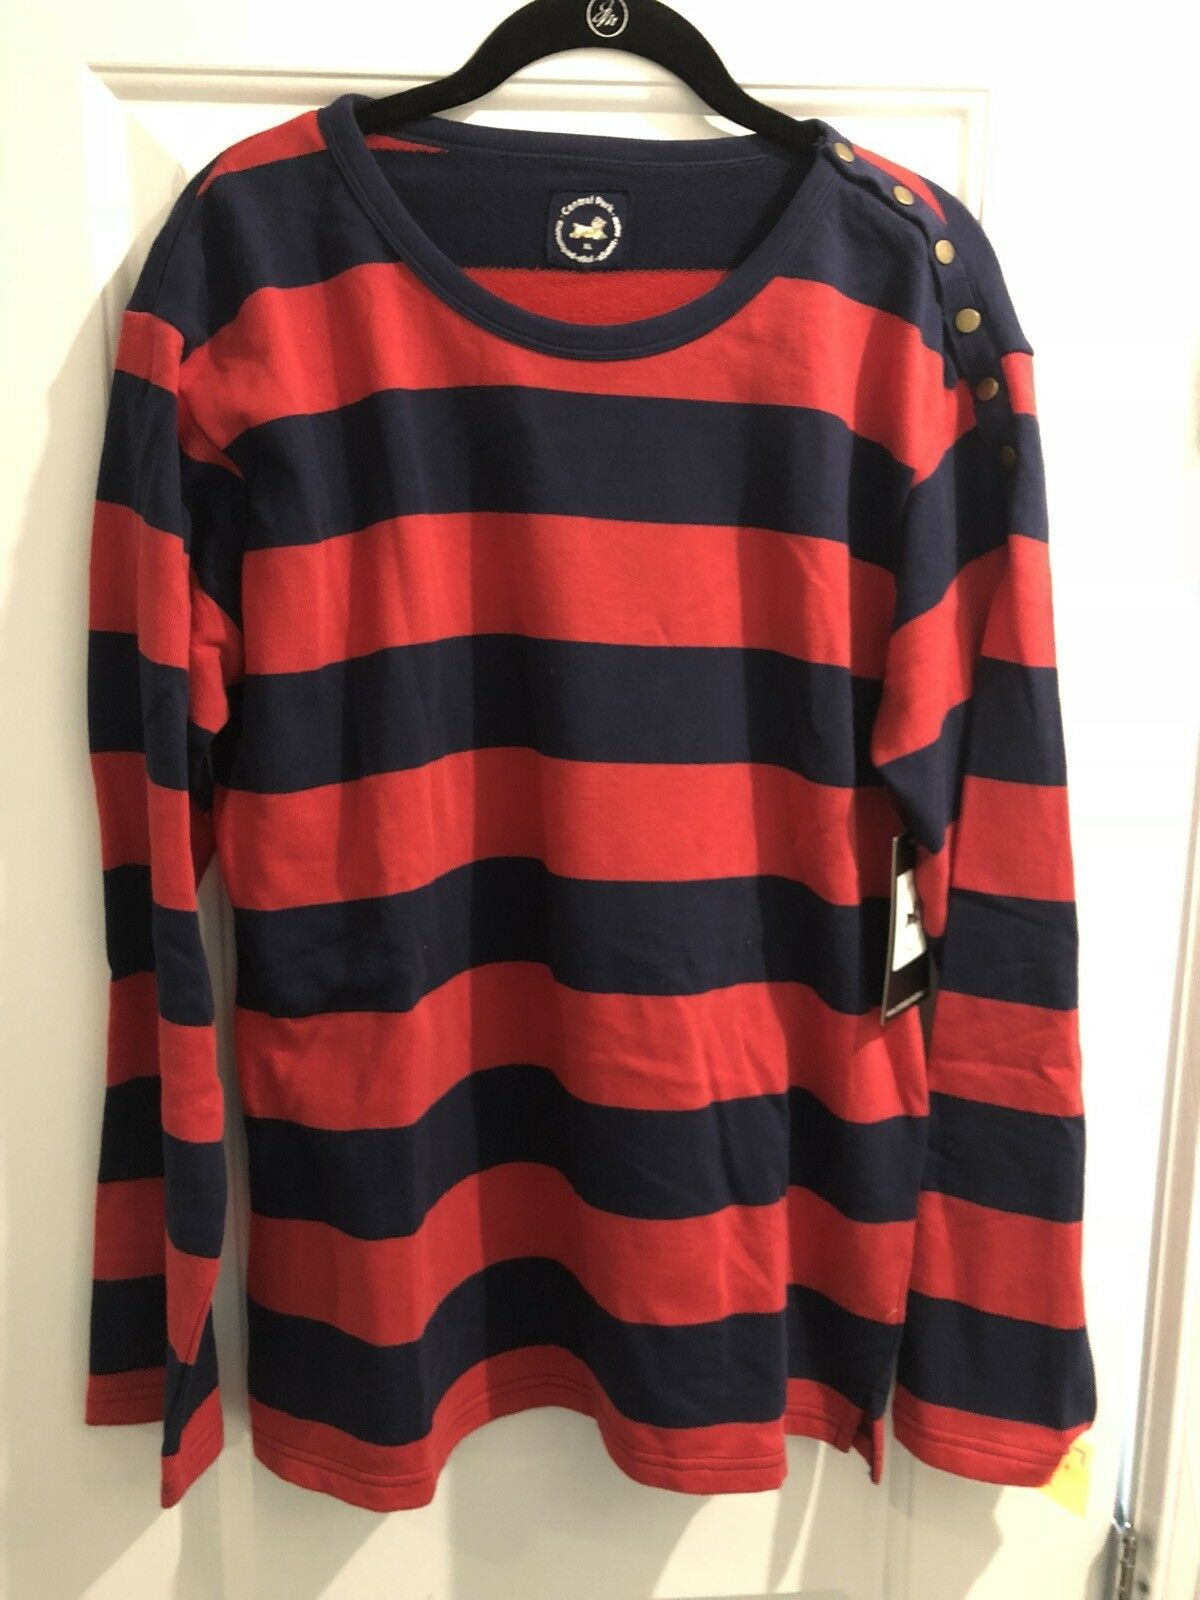 New New New With Tags Women's Central Park Yoga Red & bluee Stripe Crew Sweatshirt  XL 4f811c